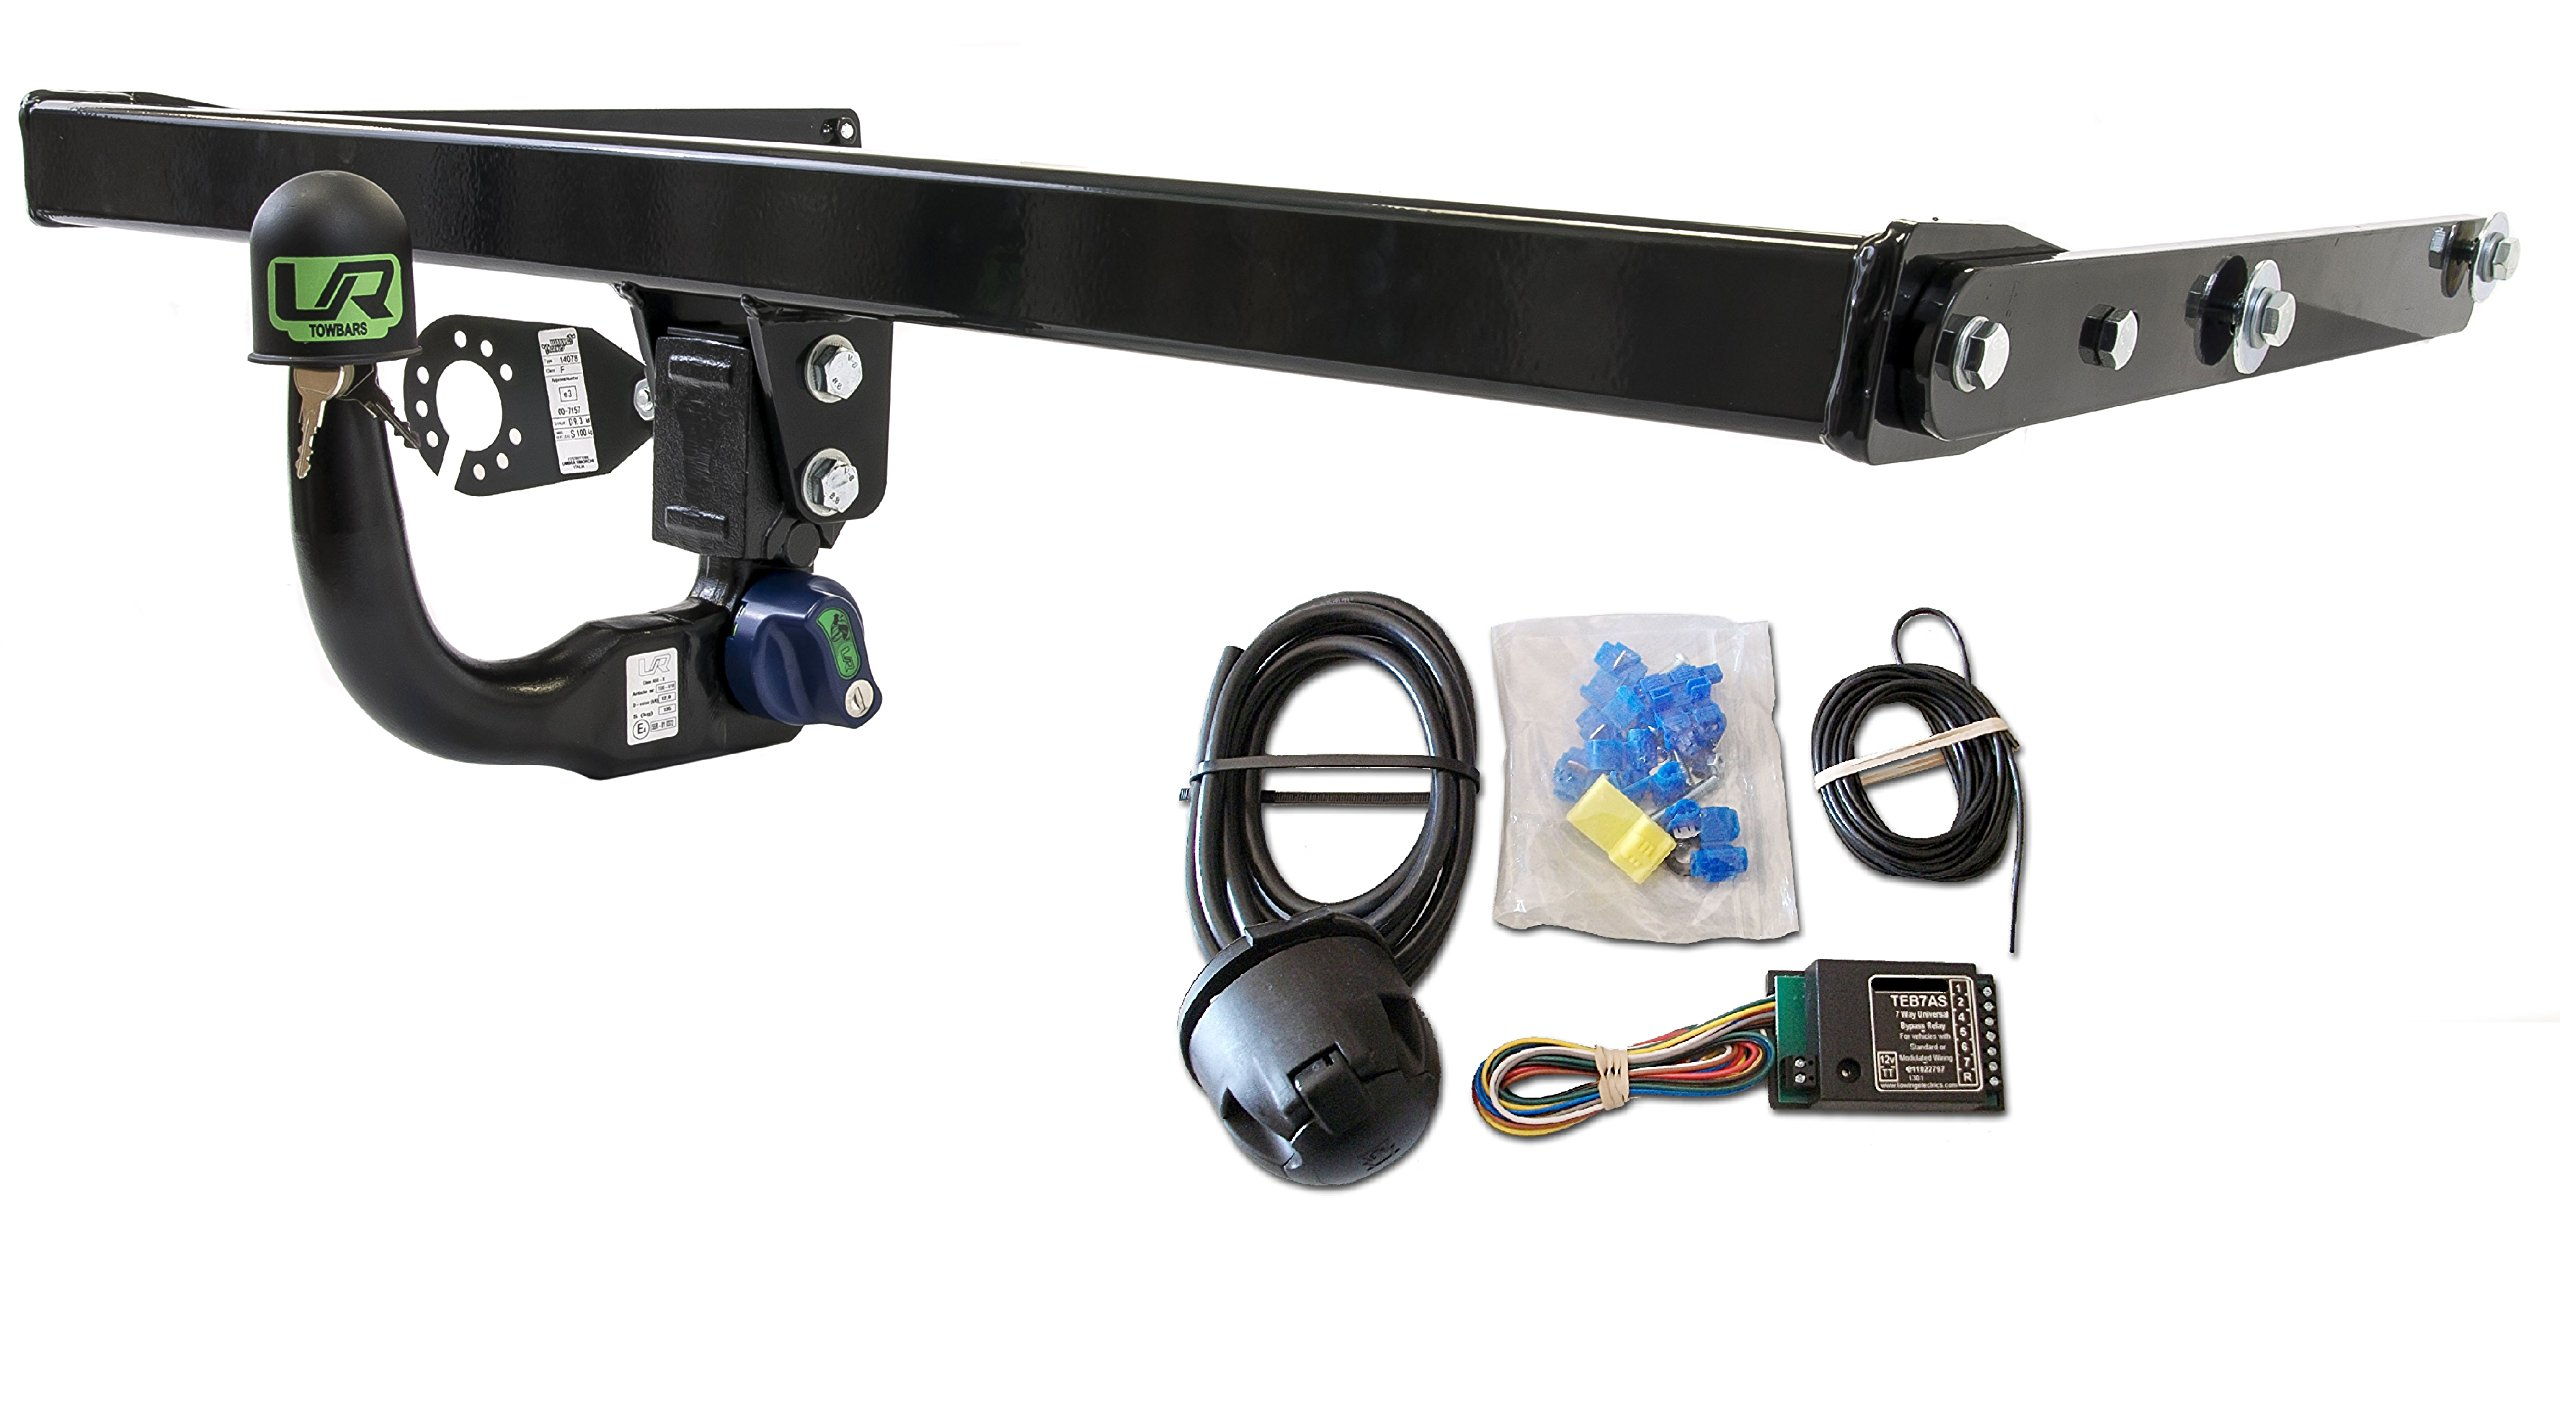 Umbra Rimorchi Fixed Swan Neck Towbar with 13 pin C2 Wiring Kit for Nissan Qashqai+2 2-4WD 2007 to 2013 UT260COR29ZFM//WU403UK2